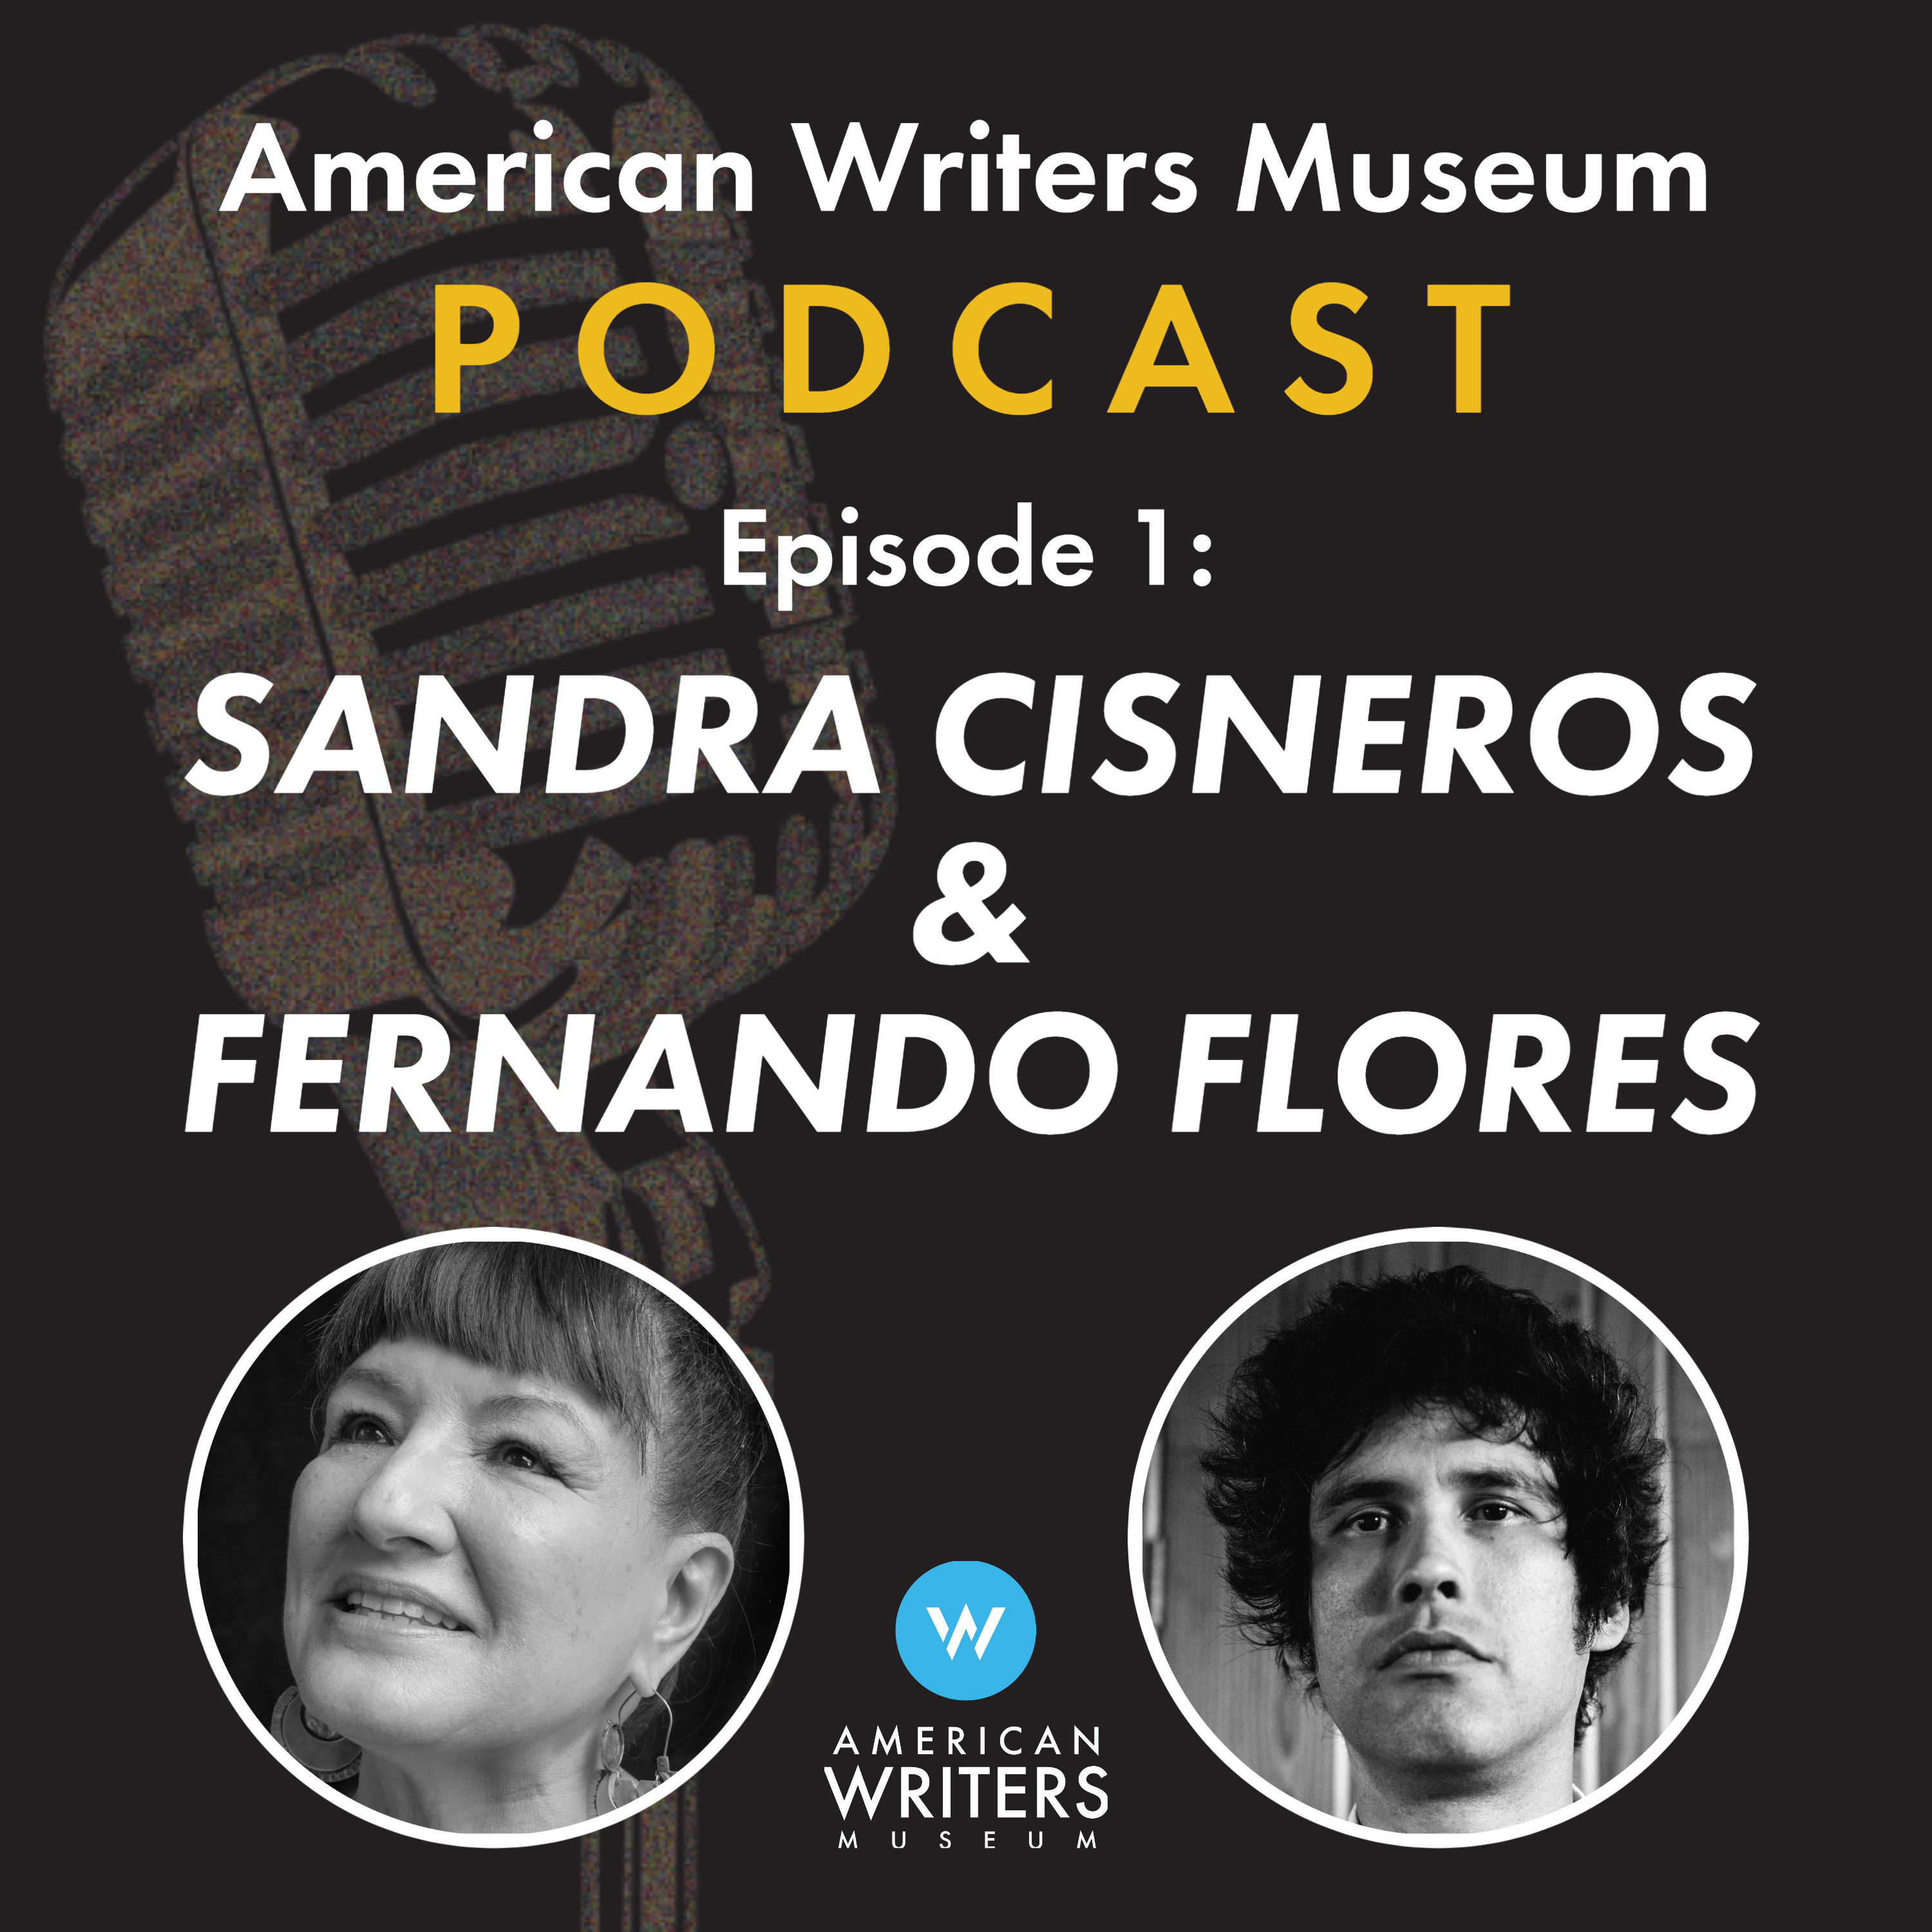 American Writers Museum Podcast episode one with Sandra Cisneros and Fernando Flores